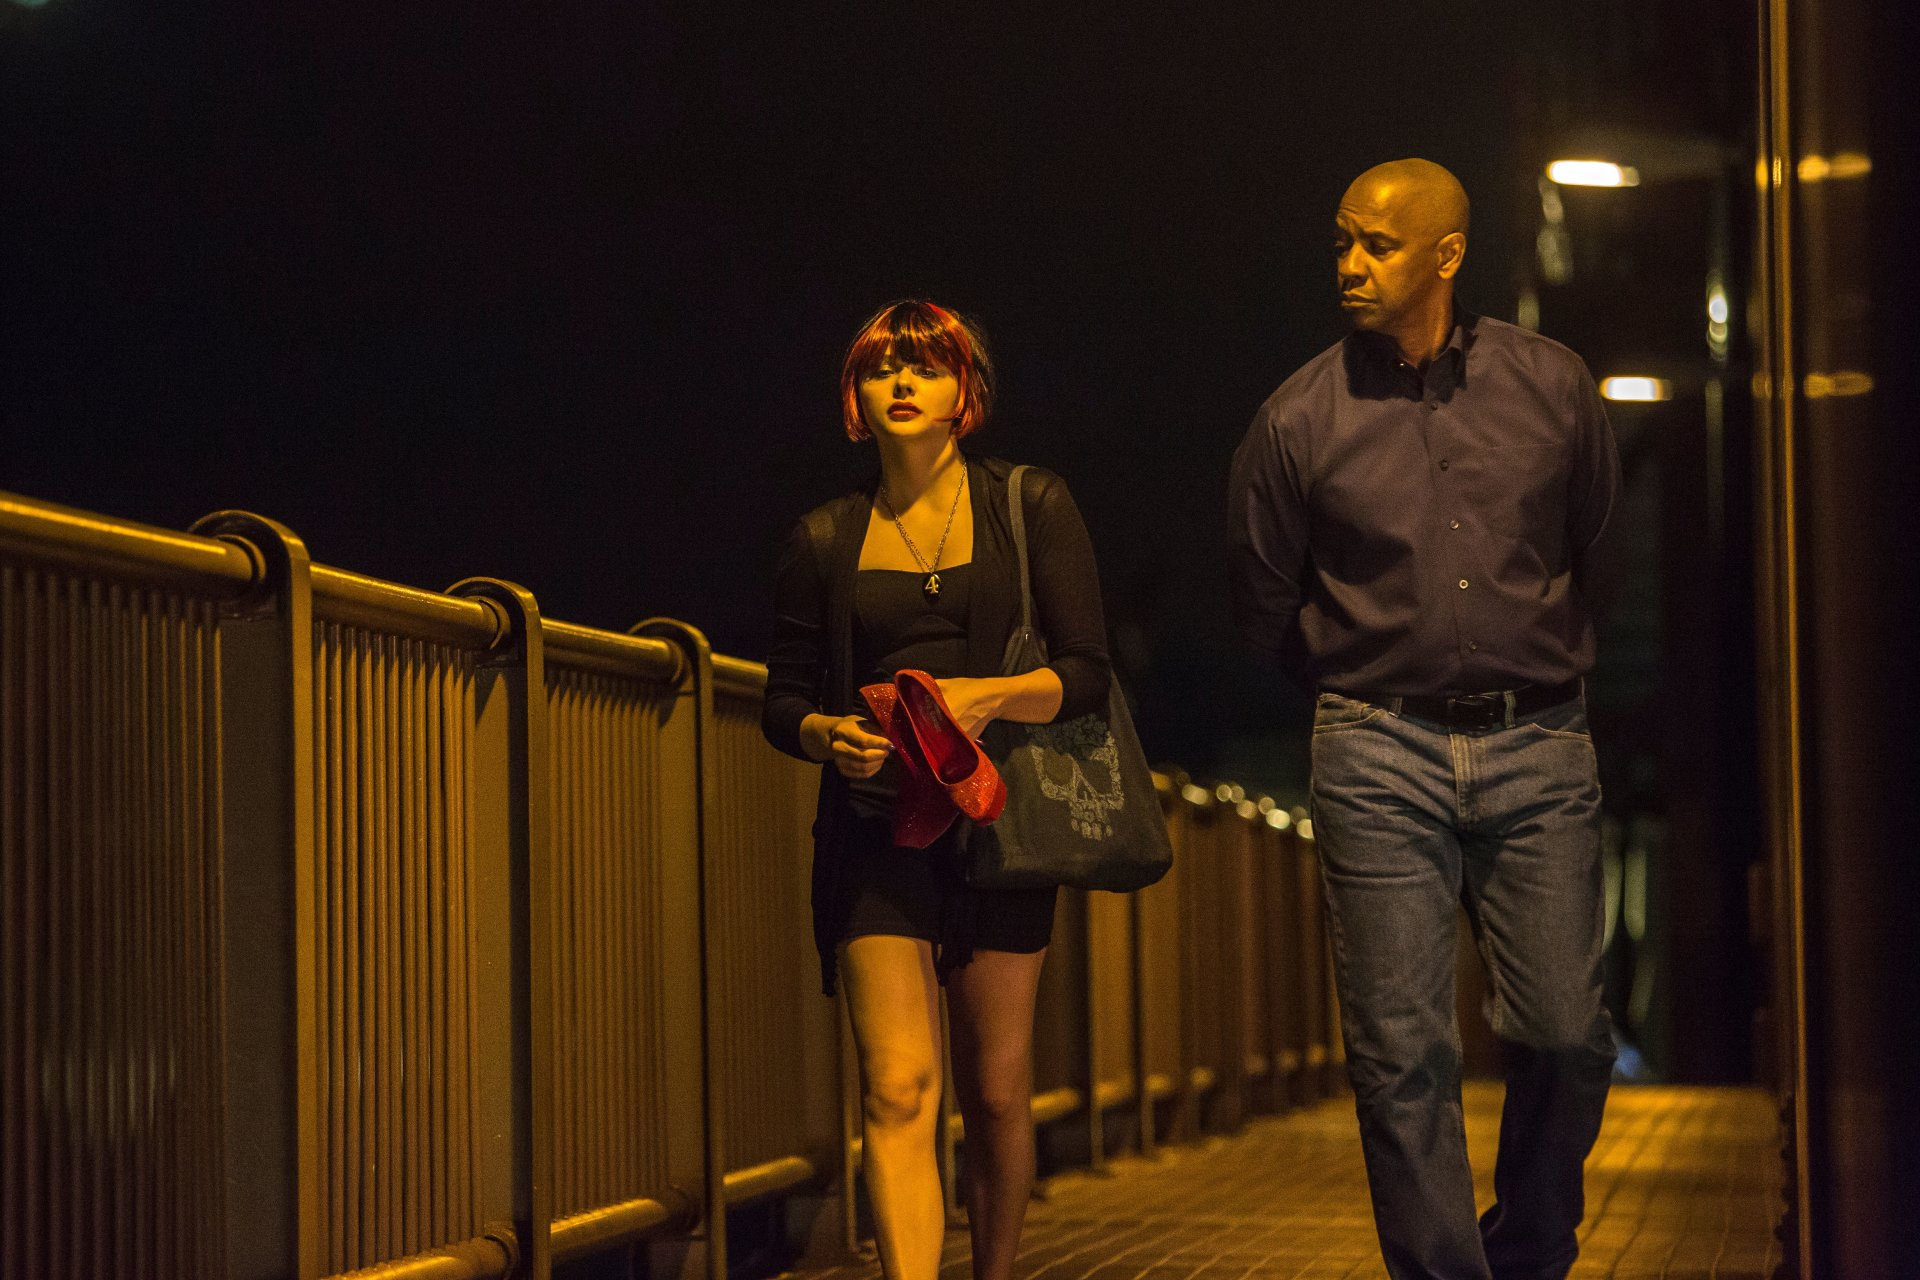 Filme - The Equalizer  Denzel Washington Chloë Grace Moretz Wallpaper